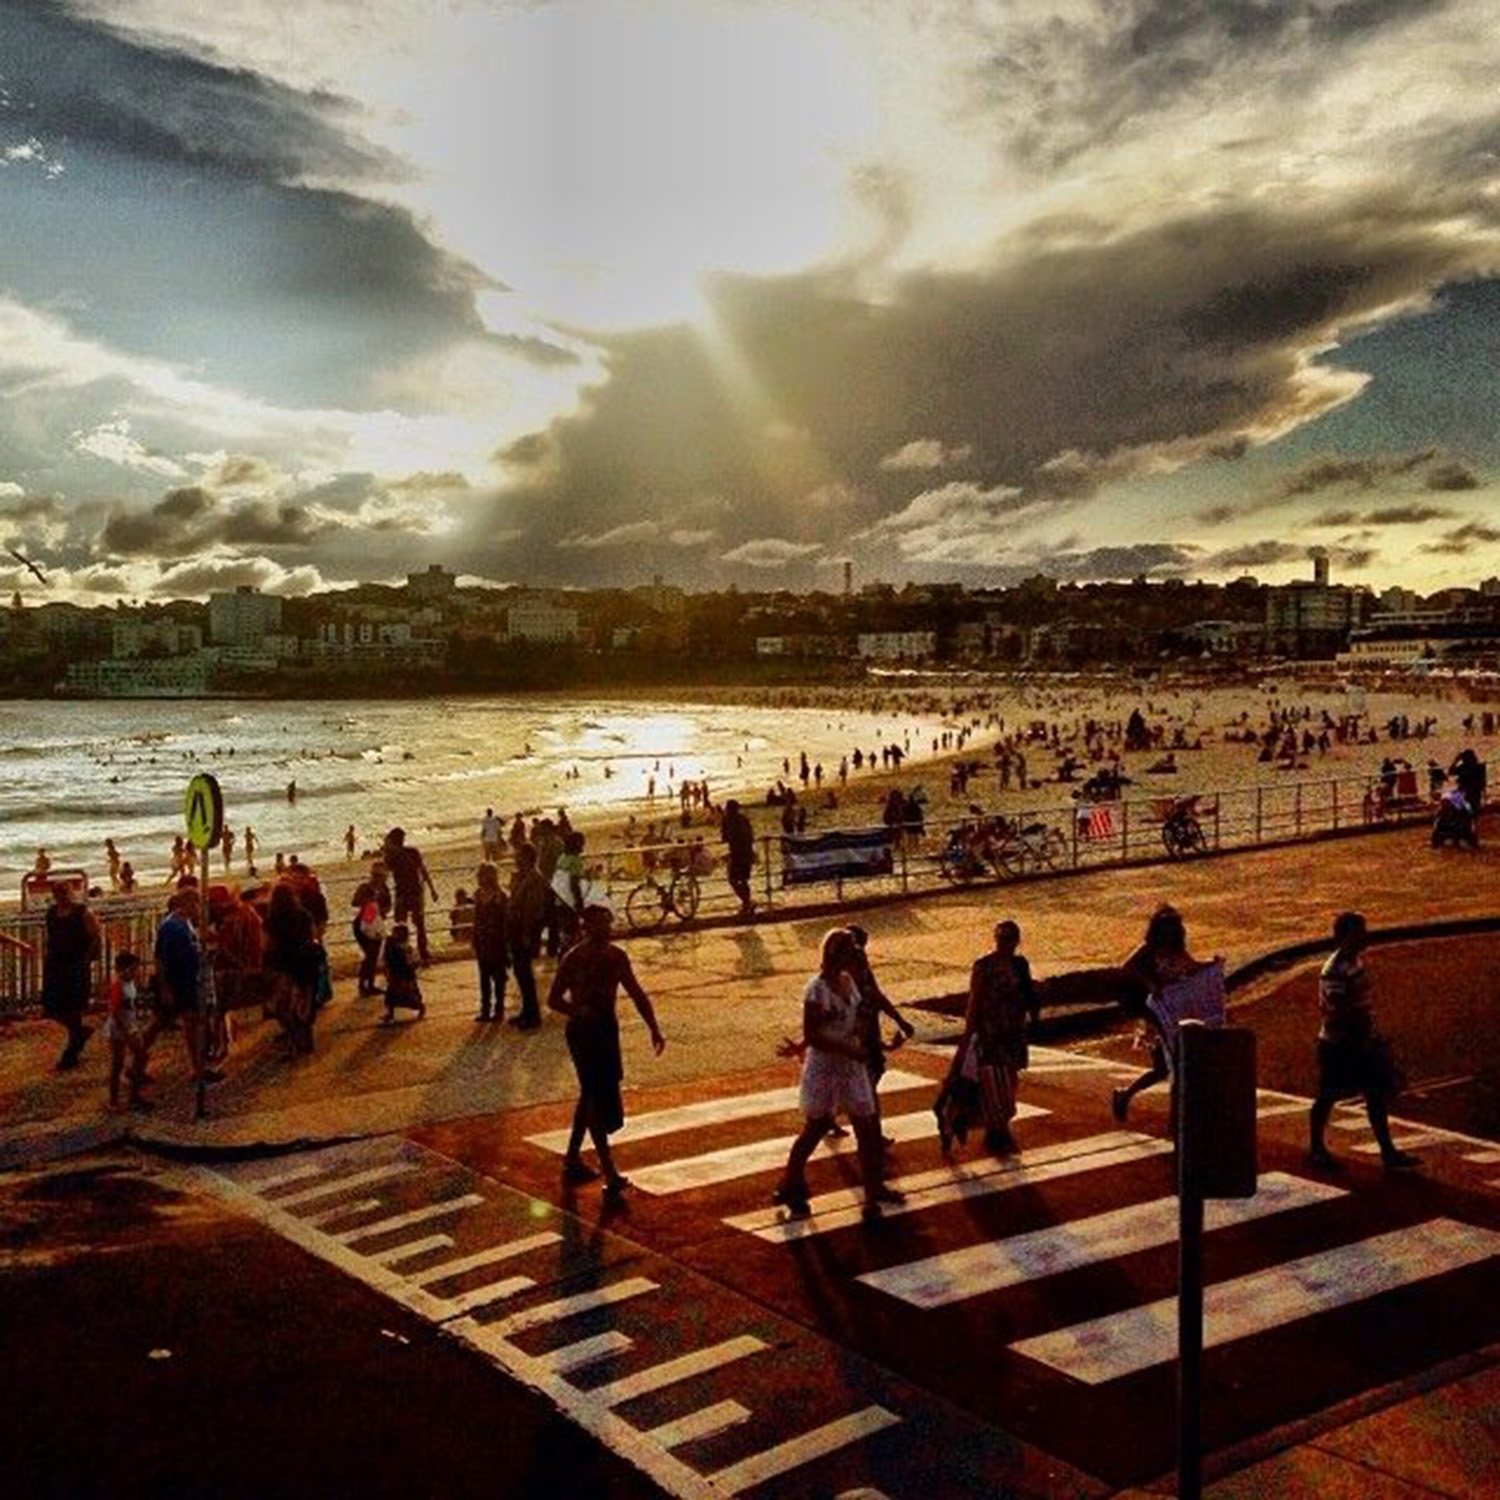 Crowds of people at North Bondi beach at golden hour